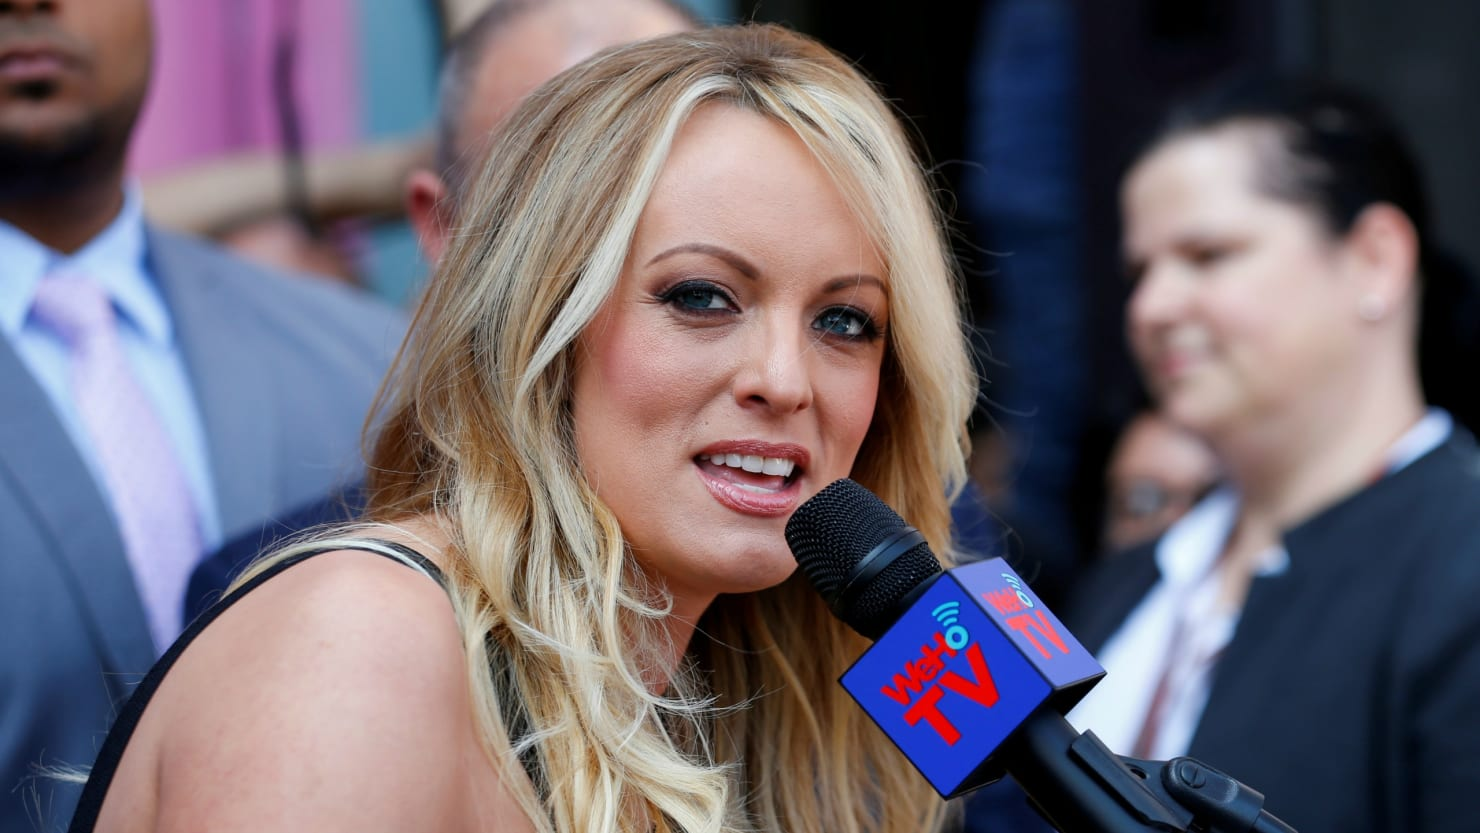 Trump's Penis Looks Like Toad From Mario Kart, Says Stormy Daniels